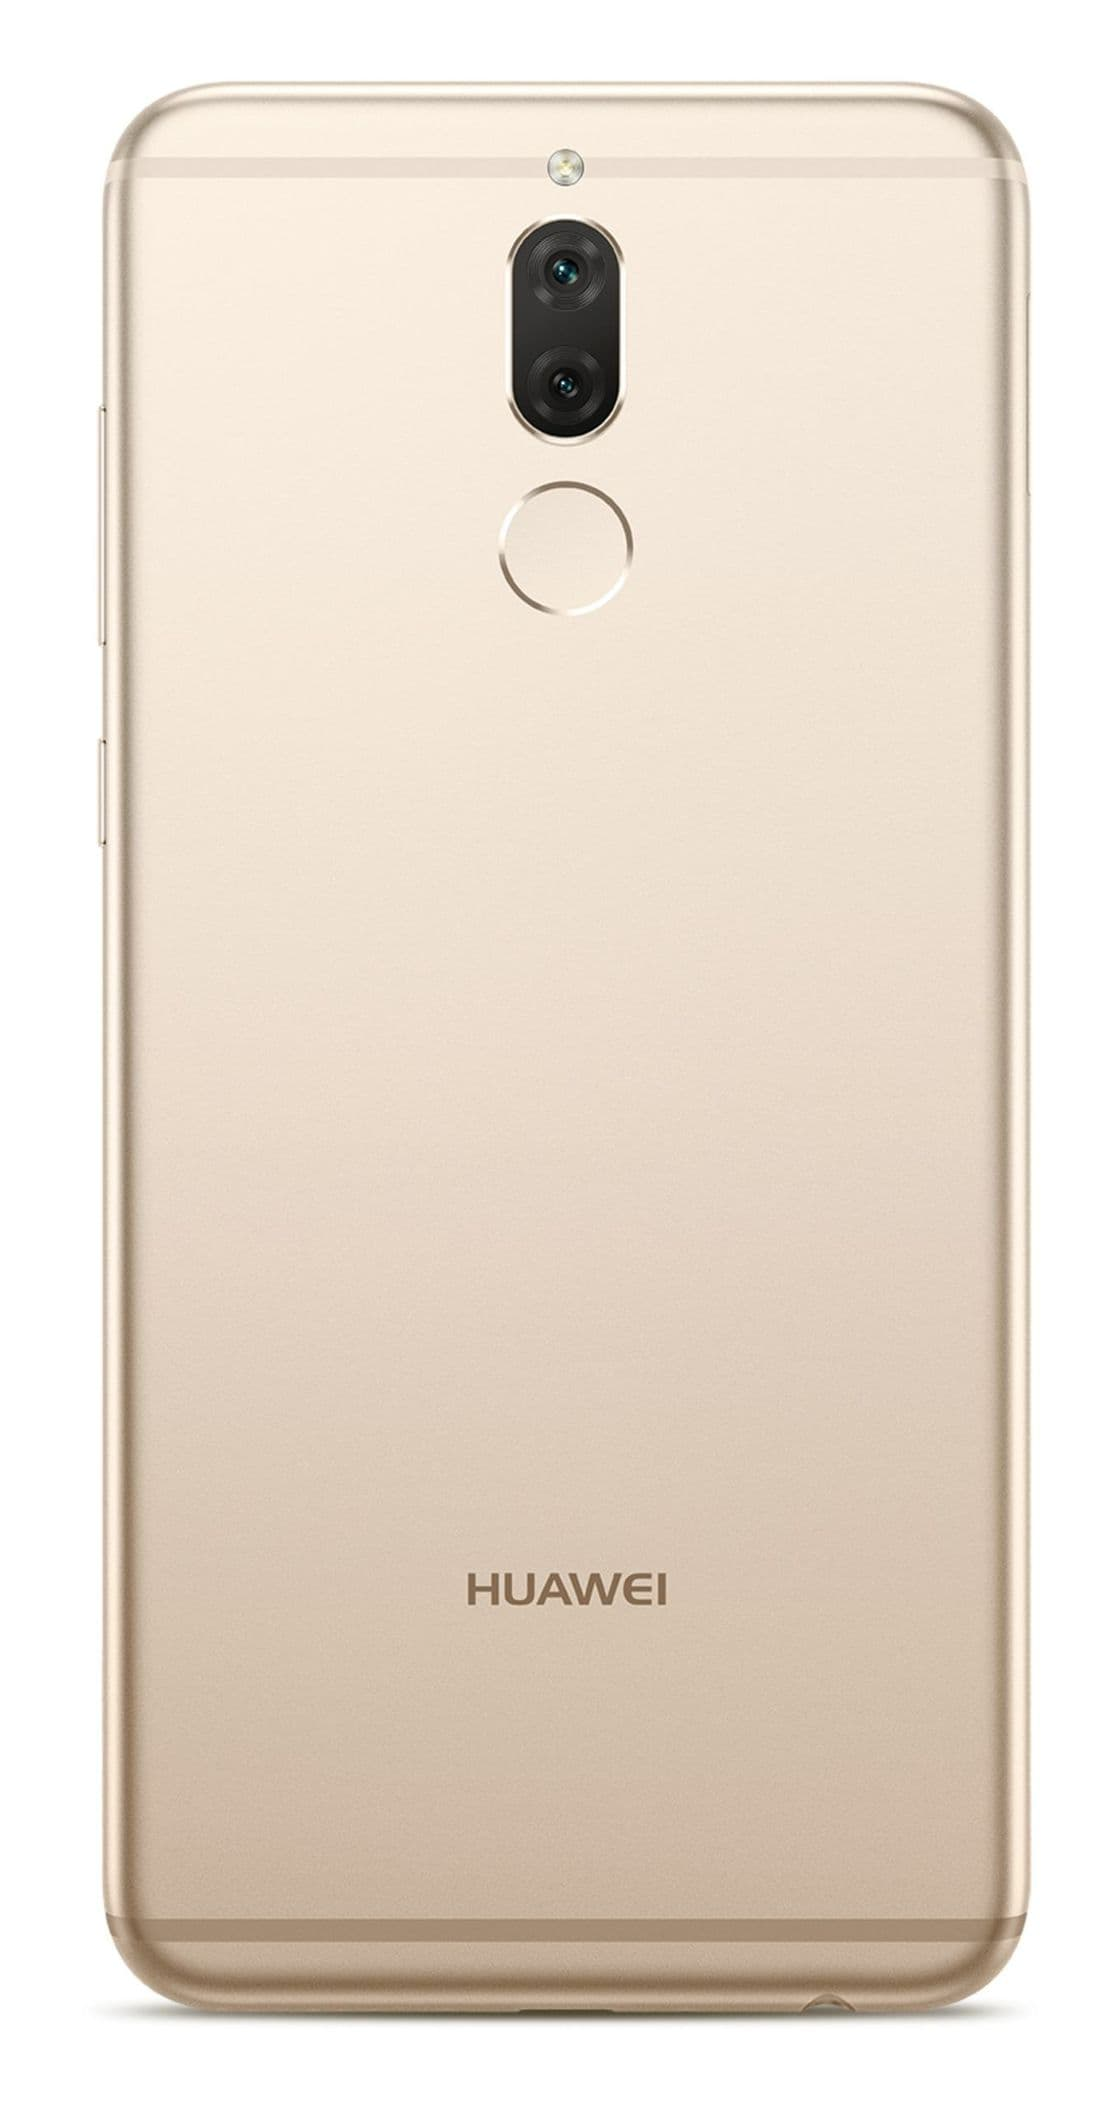 huawei mate 10 lite buy smartphone compare prices in stores huawei mate 10 lite opinions. Black Bedroom Furniture Sets. Home Design Ideas